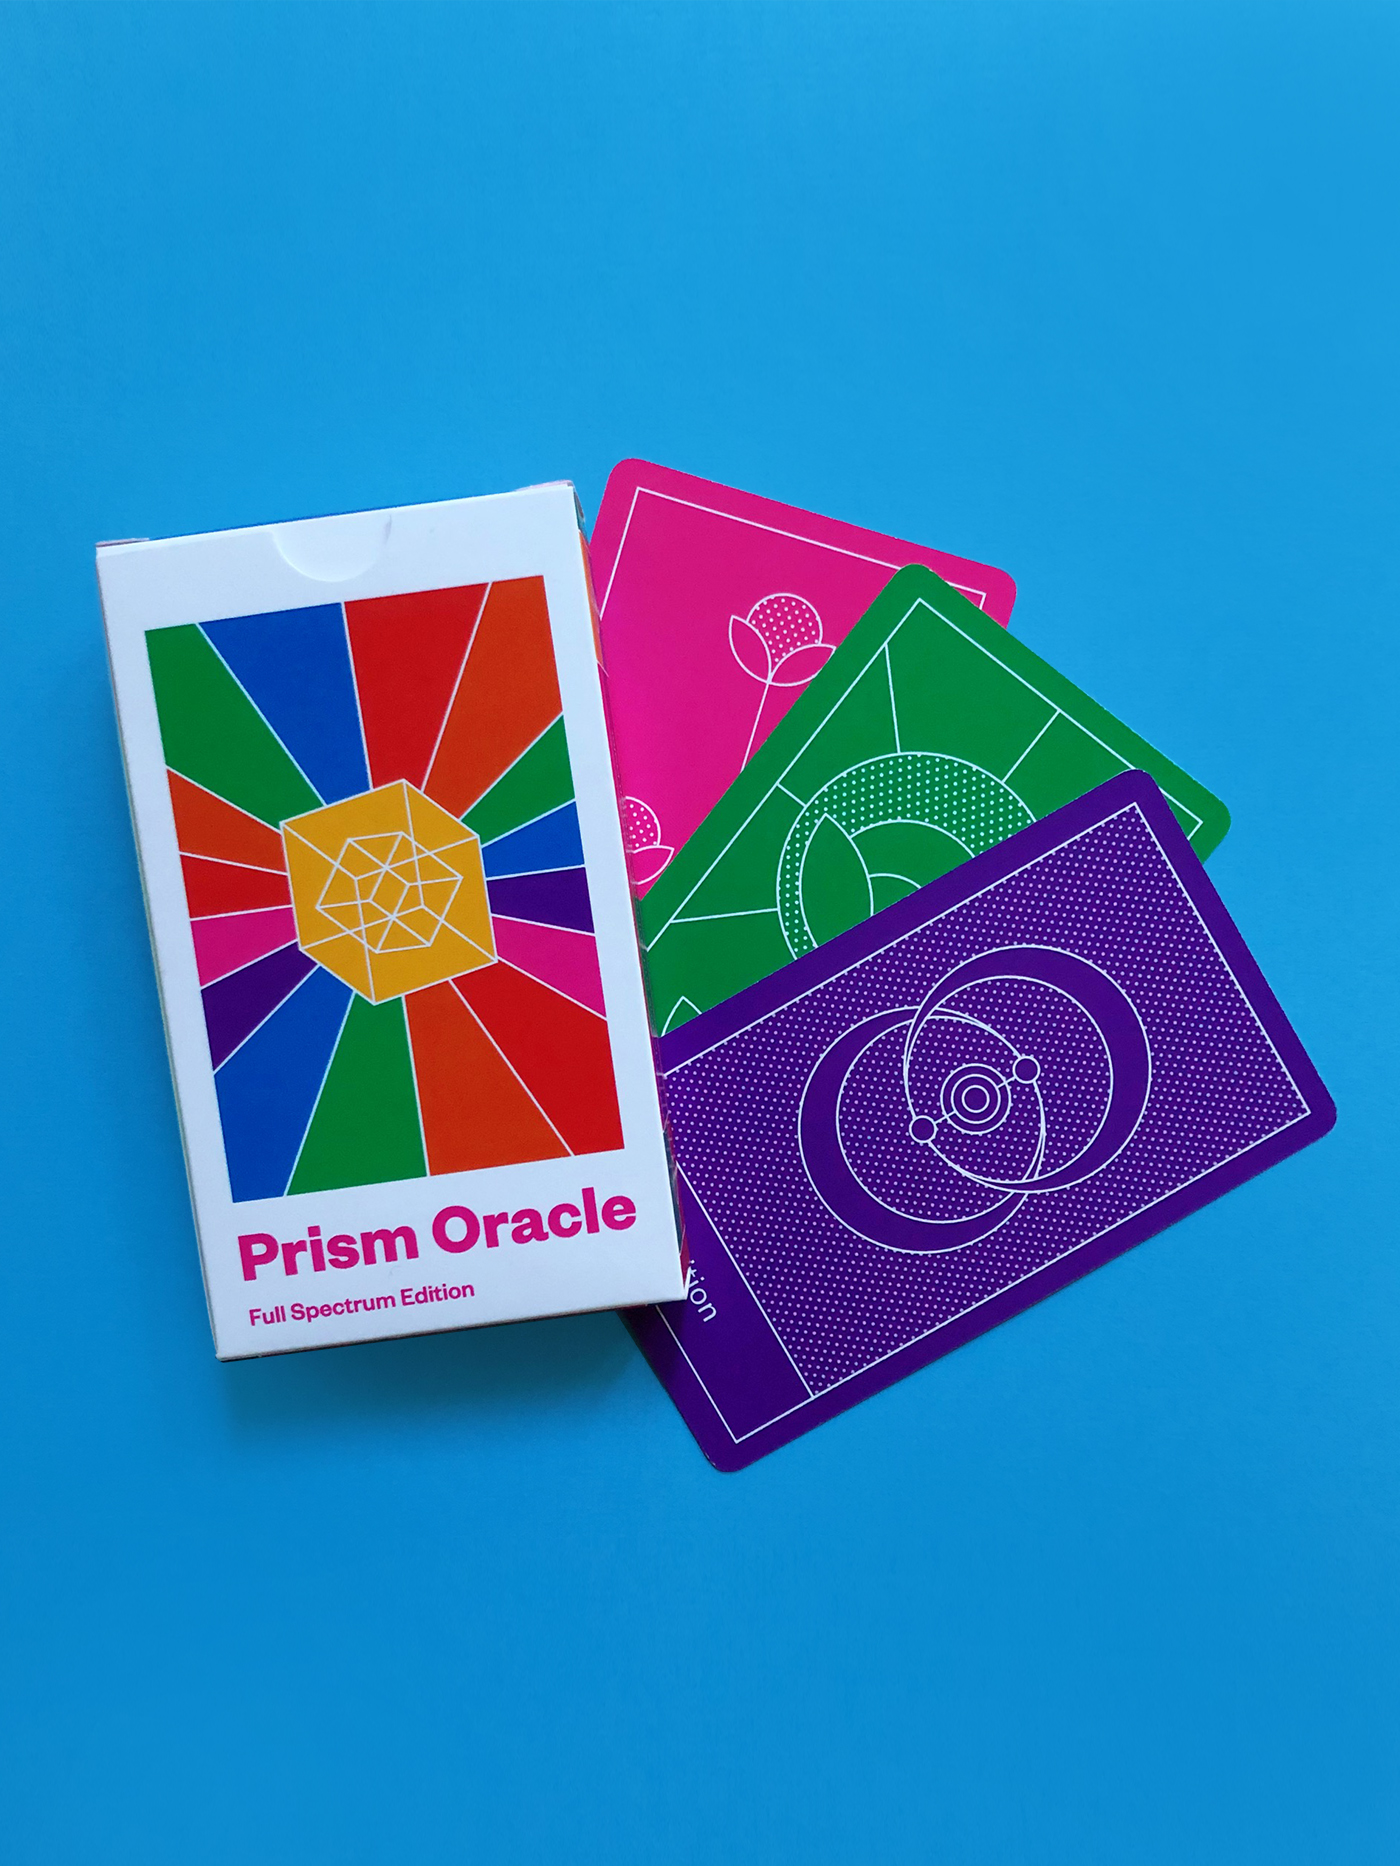 prism oracle deck, full spectrum edition, by iriseyris!